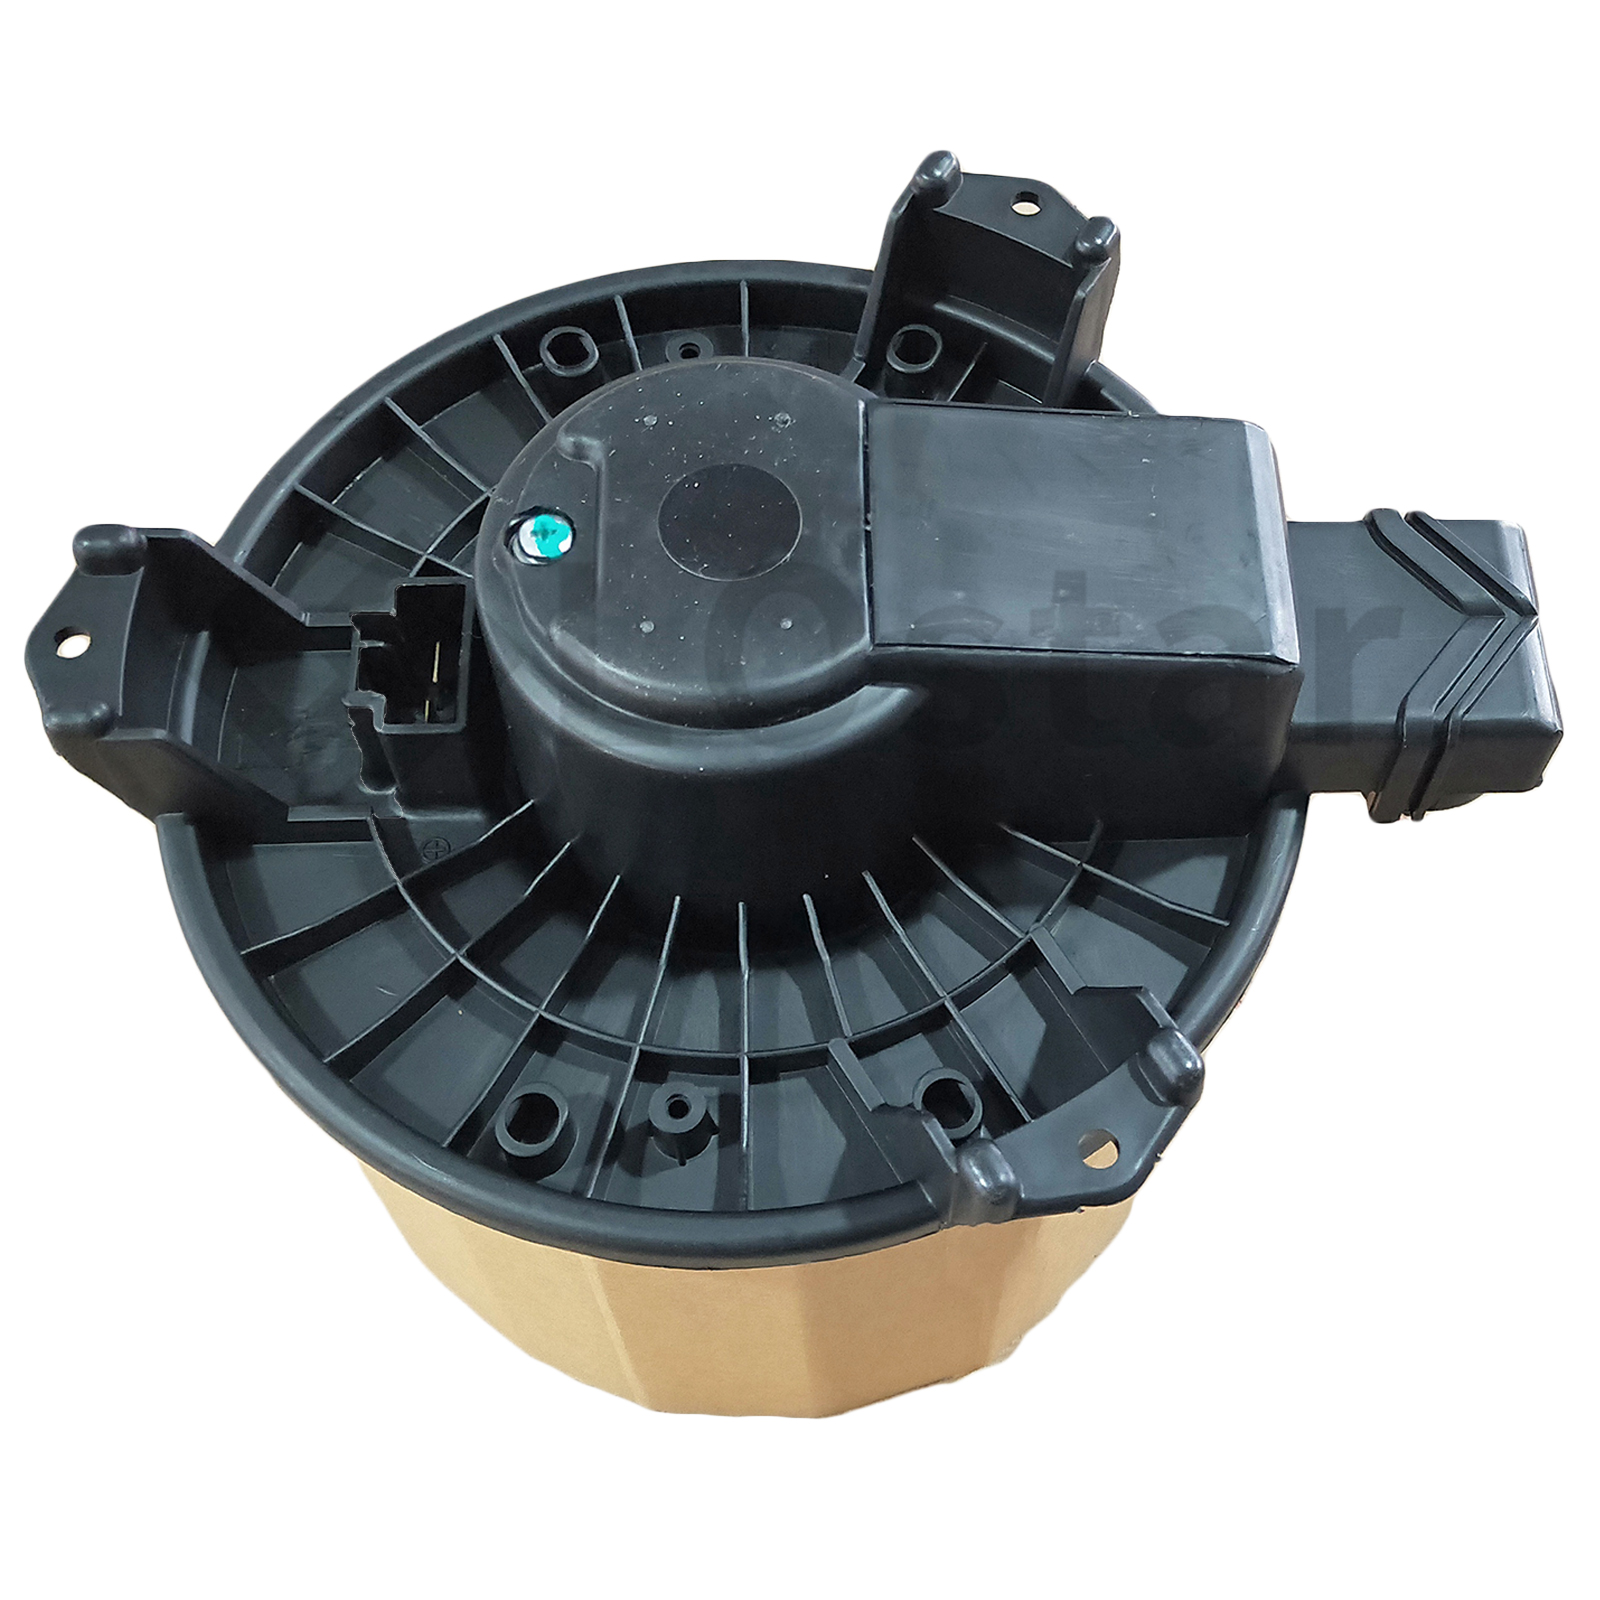 Heater A/C Blower Motor W/Fan Cage Fit Compass Accord Edge